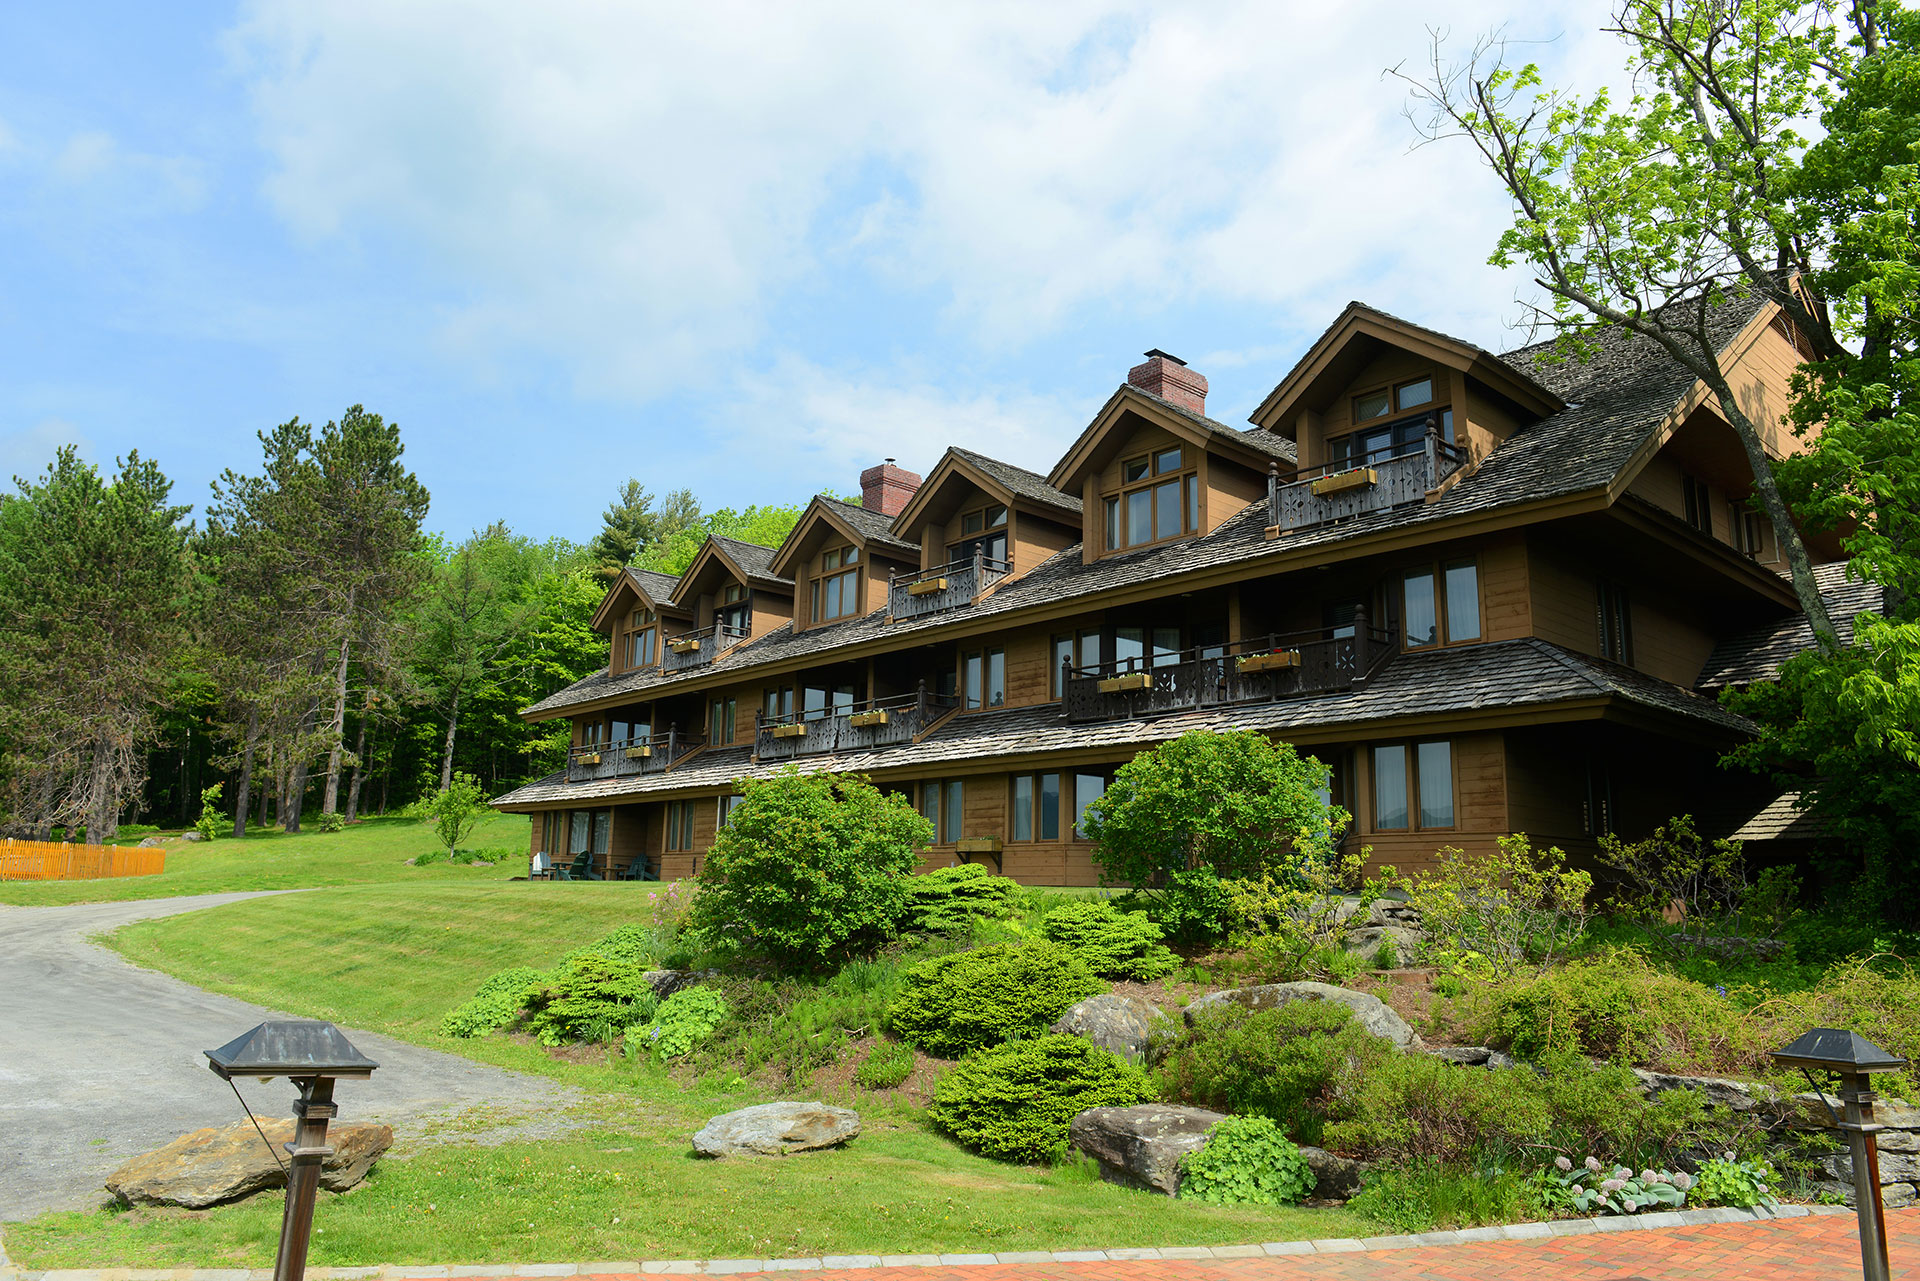 Trapp Family Lodge; Courtesy of jiawangkun/Shutterstock.com